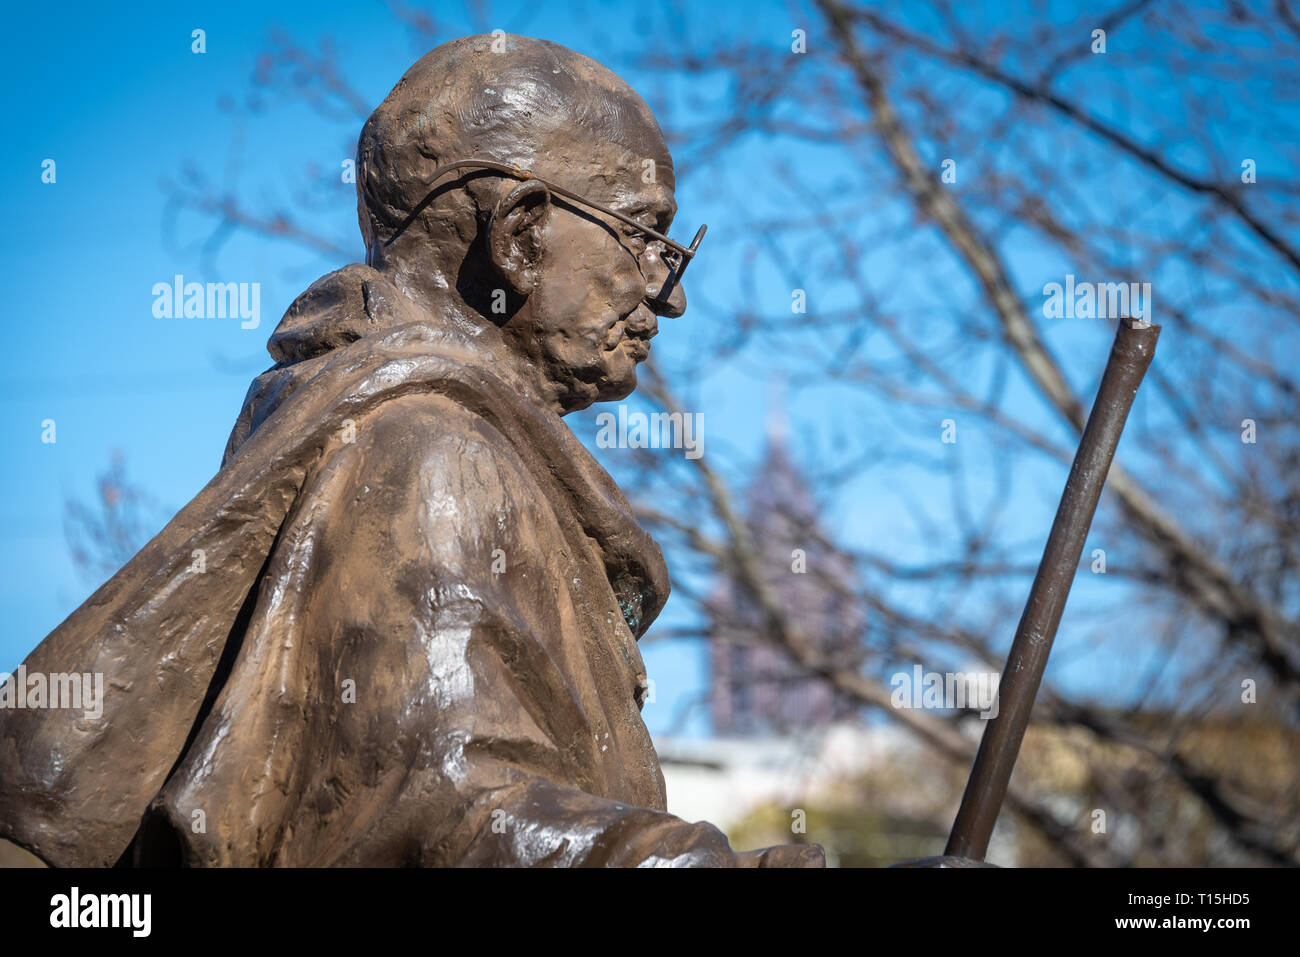 Mahatma Gandhi statue at the Visitor Center of the Martin Luther King, Jr. Historical Park in Atlanta, Georgia. (USA) - Stock Image